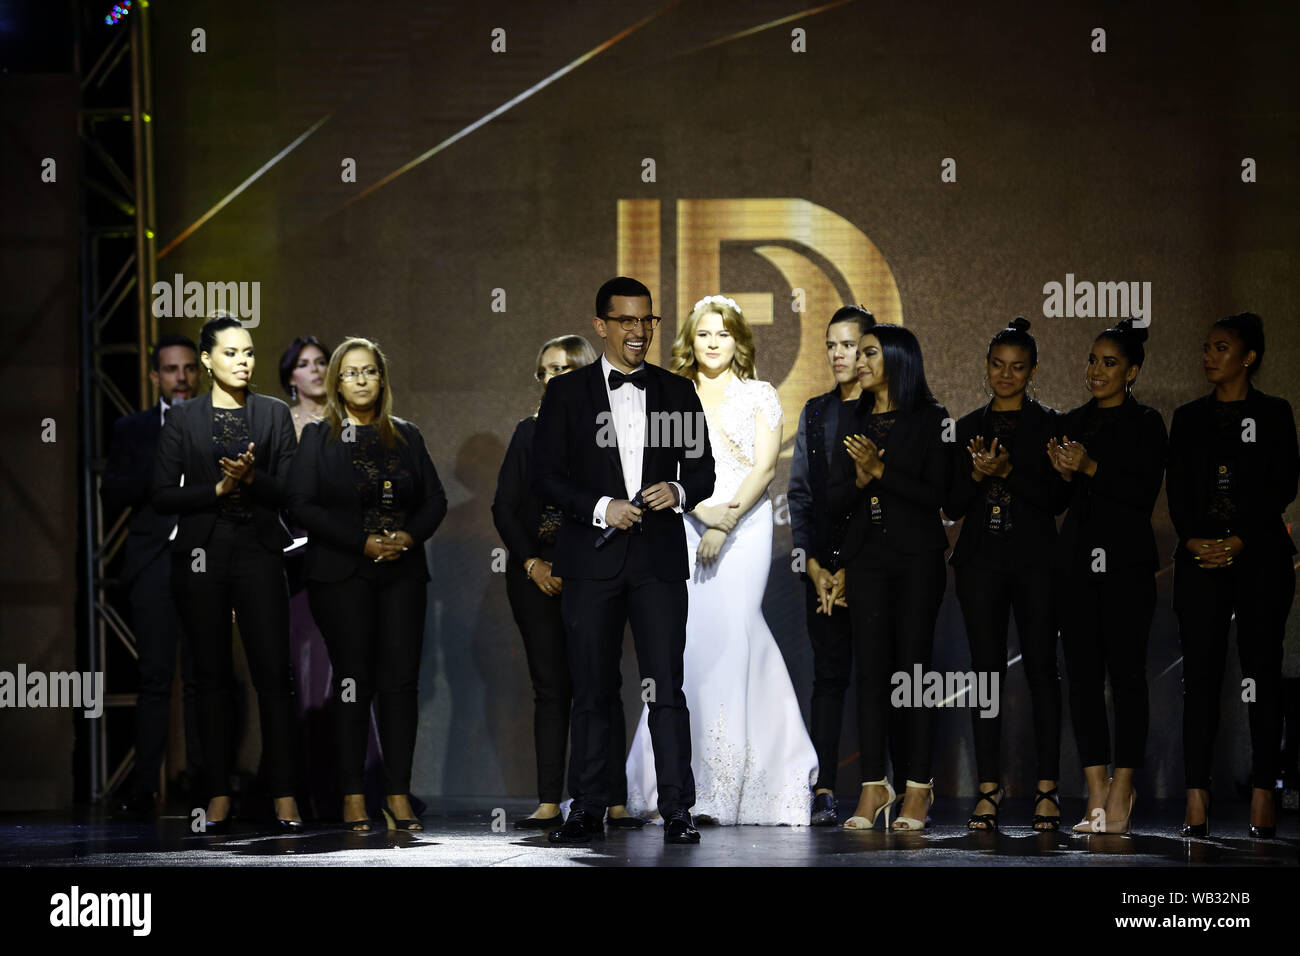 Valencia Carabobo Venezuela 22nd Aug 2019 August 23 2019 Fashion Designer Daniel Fabregas C With His